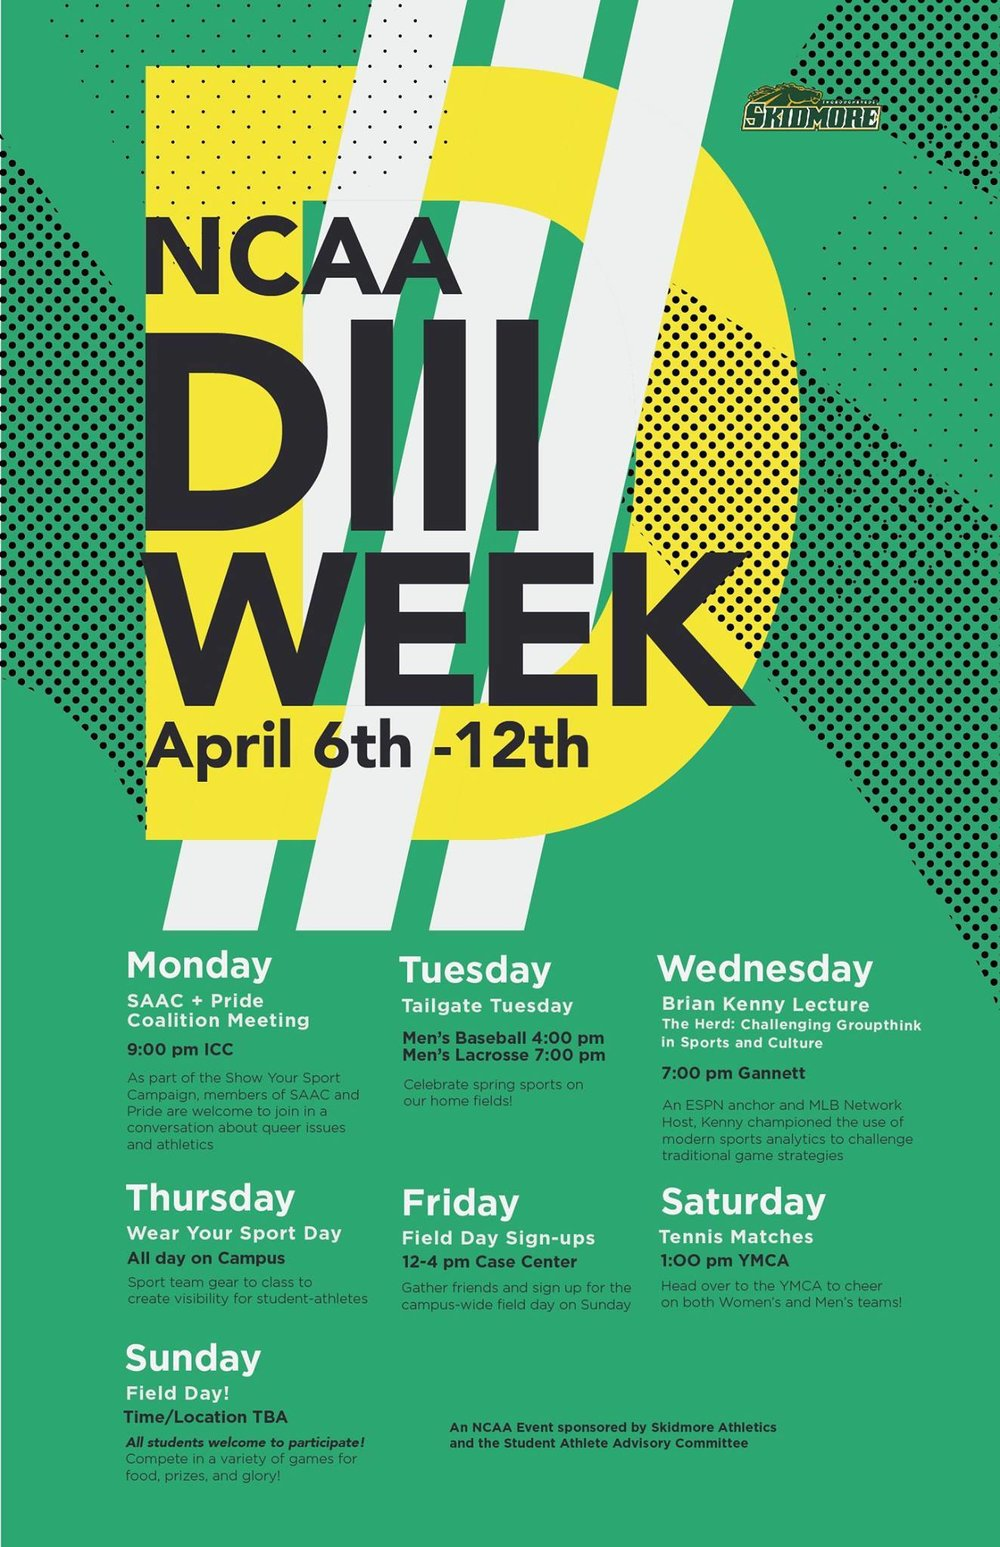 DIII Week Poster, by Aria Goodman '15